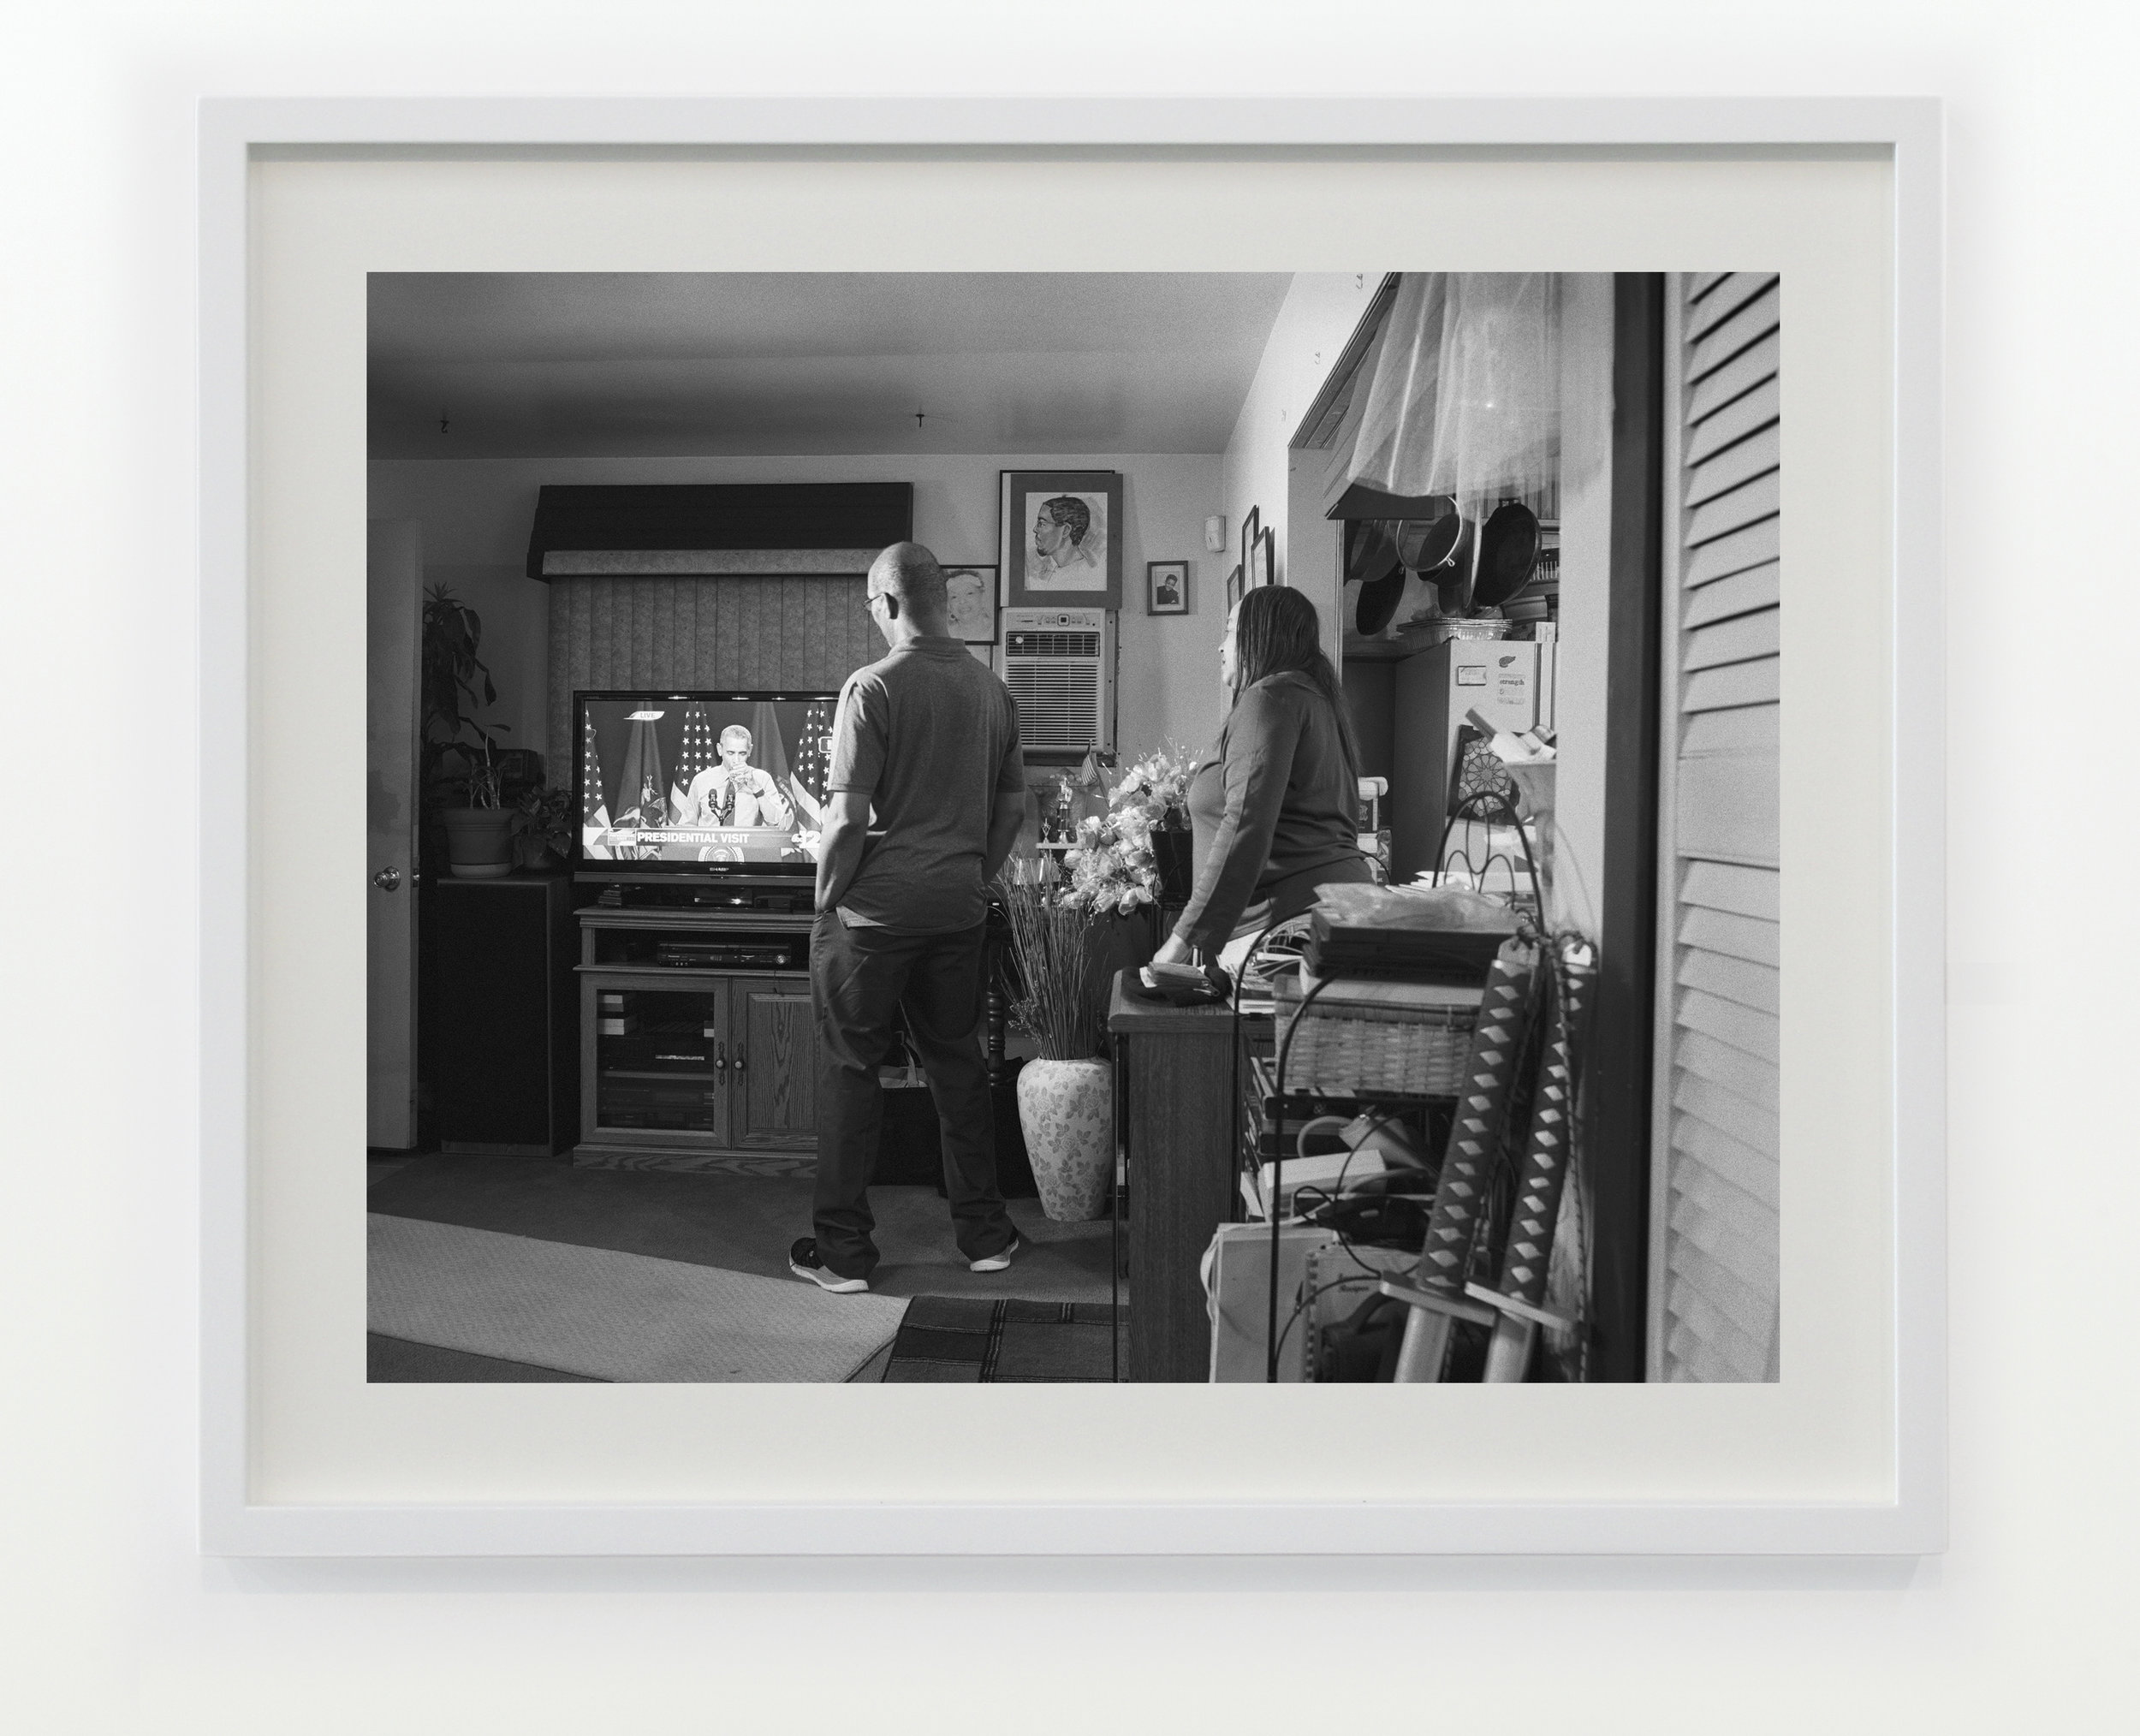 Shea's Aunt Denise and Uncle Rodney in their home on Foster Street watching President Obama take a sip of Flint water © 2016/2017